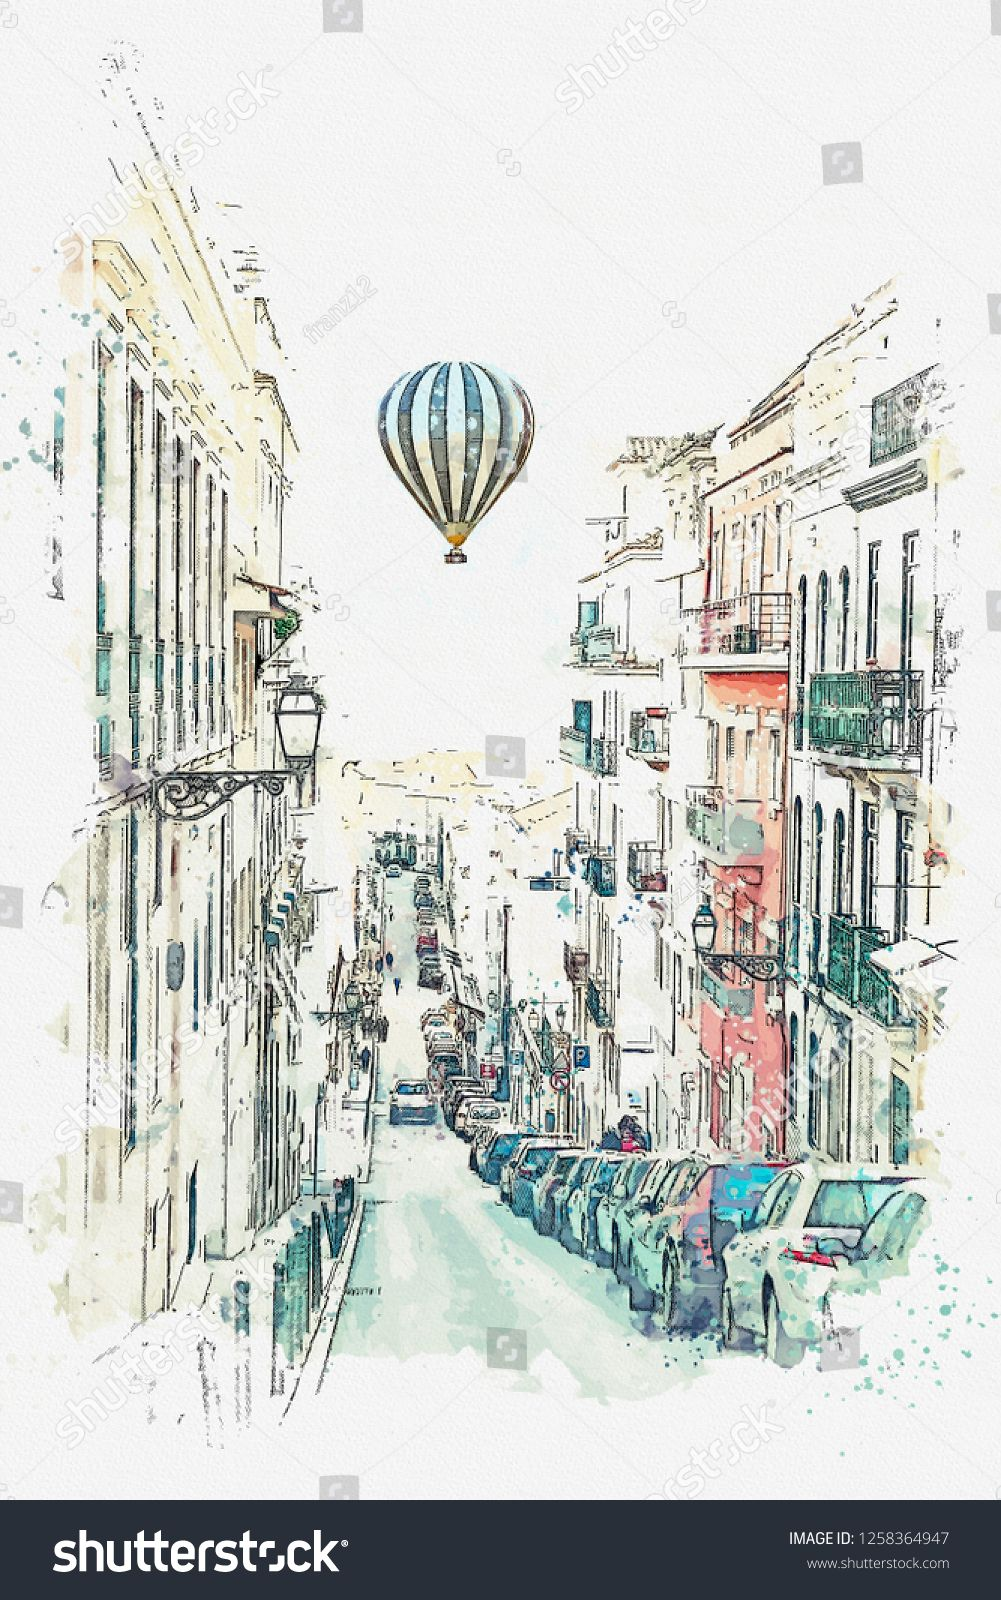 Illustration Traditional Street With Houses And Road In Lisbon In Portugal Hot Air Balloon Flies In The Sky Ad Houses Road Lisbon Illustration Air Balloon